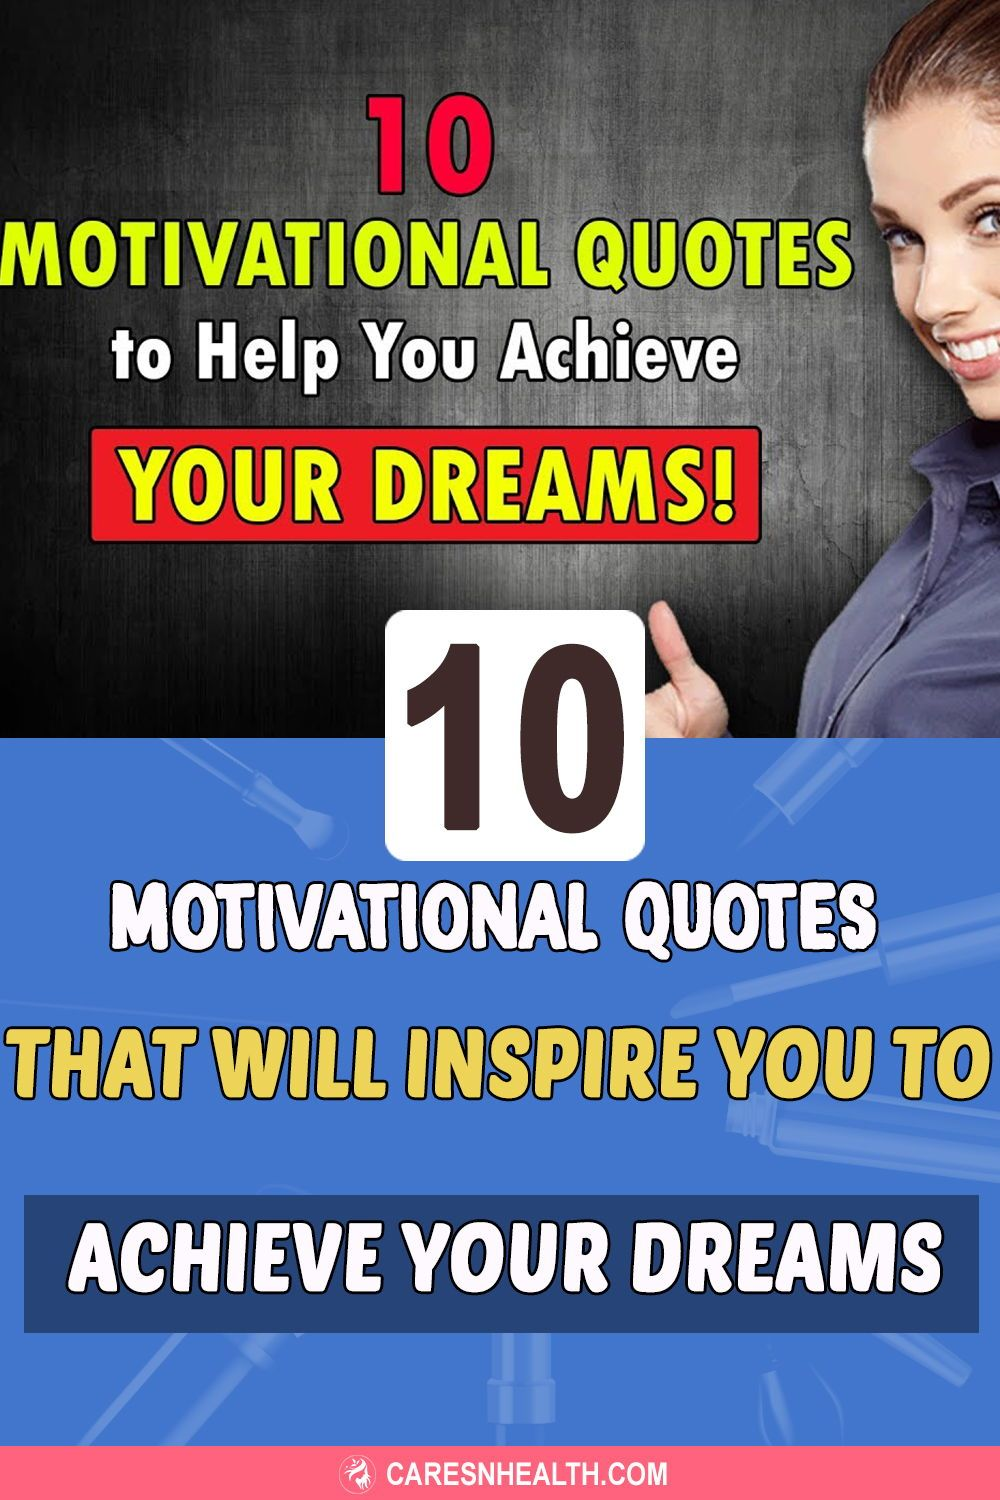 10 Motivational Quotes That Will Inspire You To Achieve Your